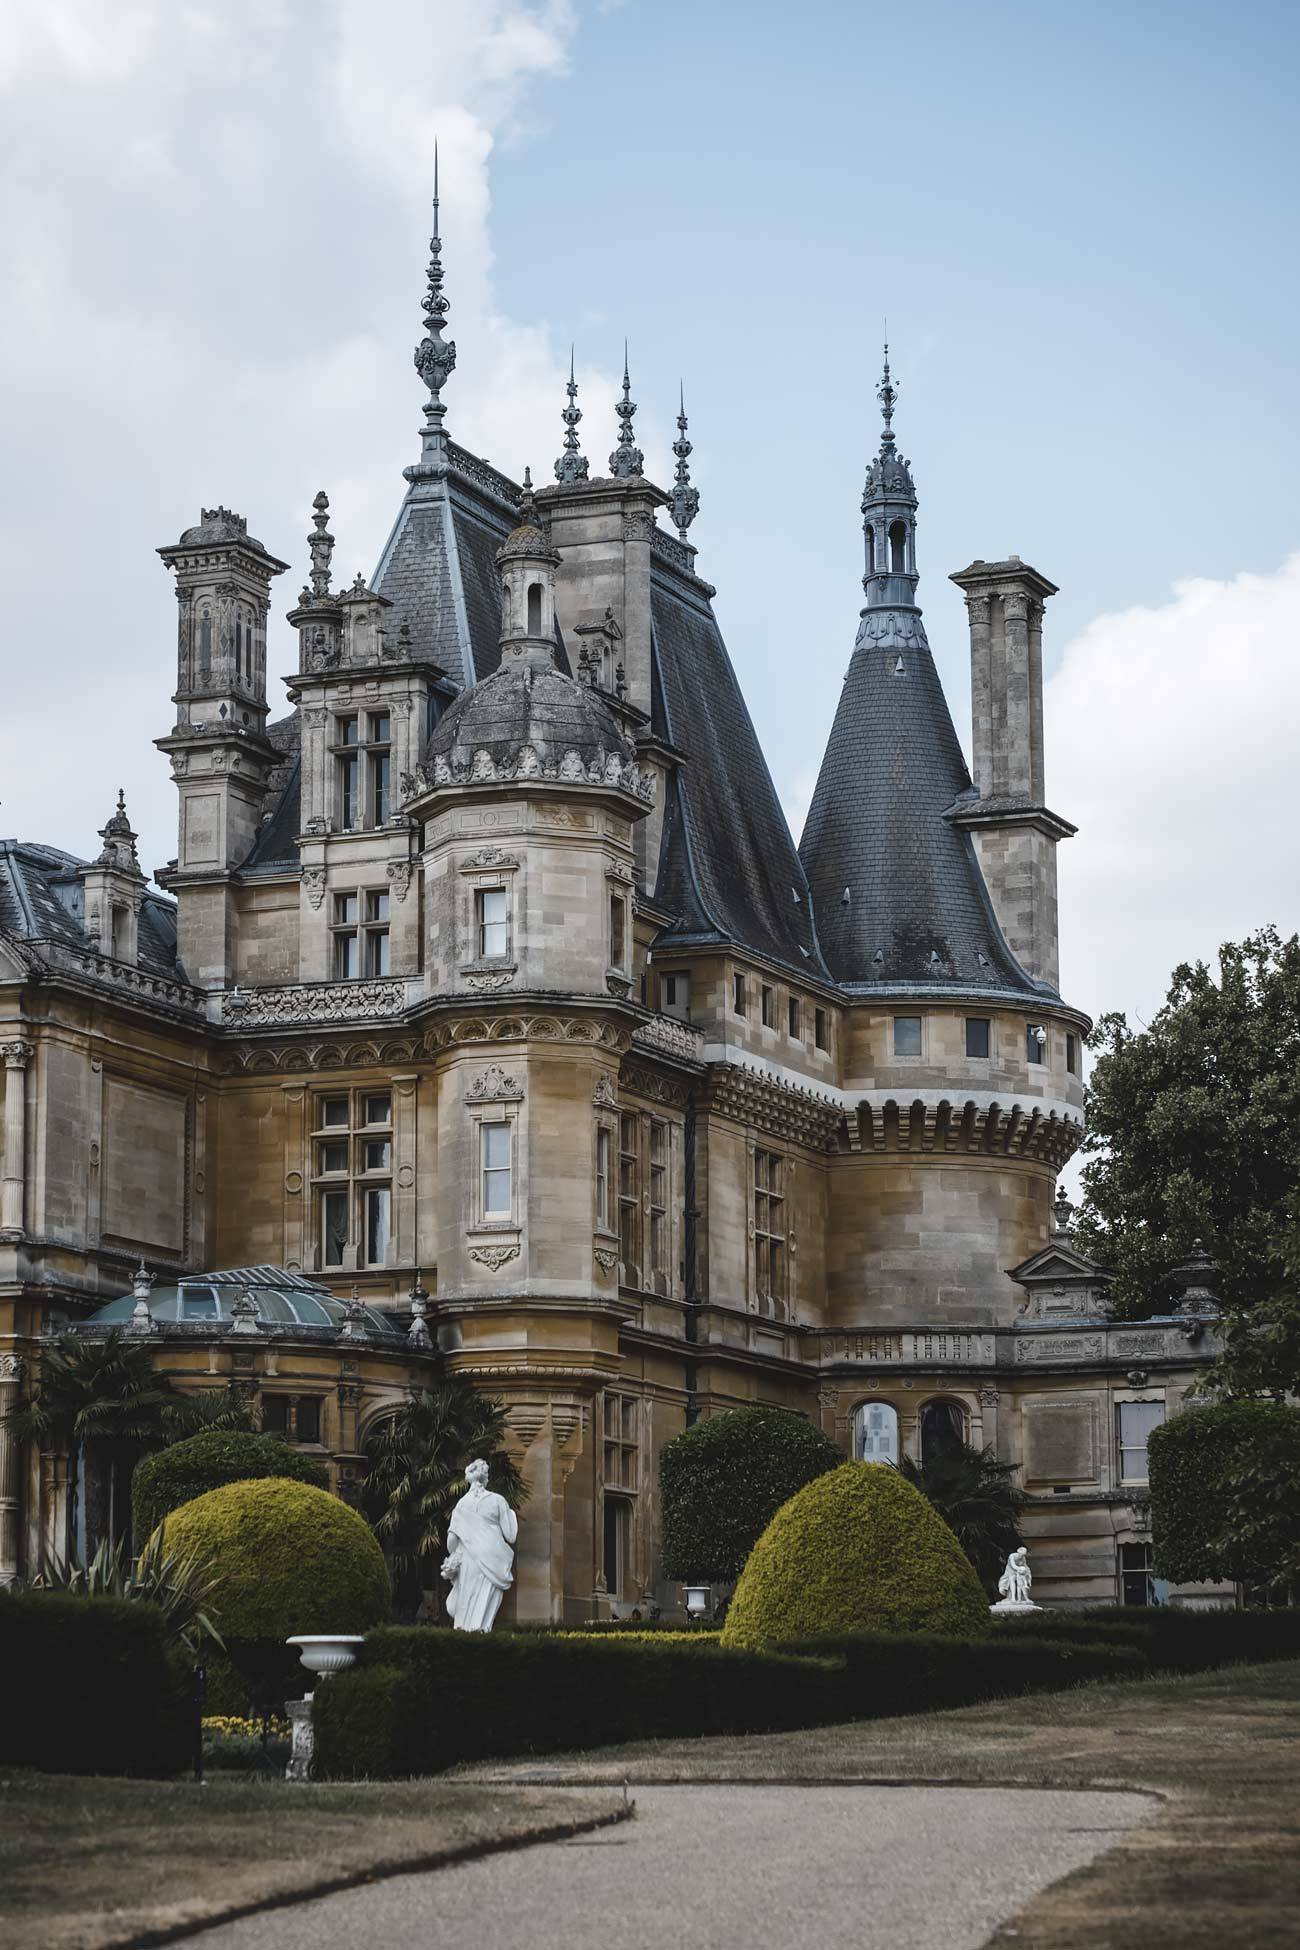 Beautiful Manor house in England, England Travel, Waddesdon-Manor-estate-England-National-Trust-property-beautiful-houses-of-England-London-blog-Katya-jackson